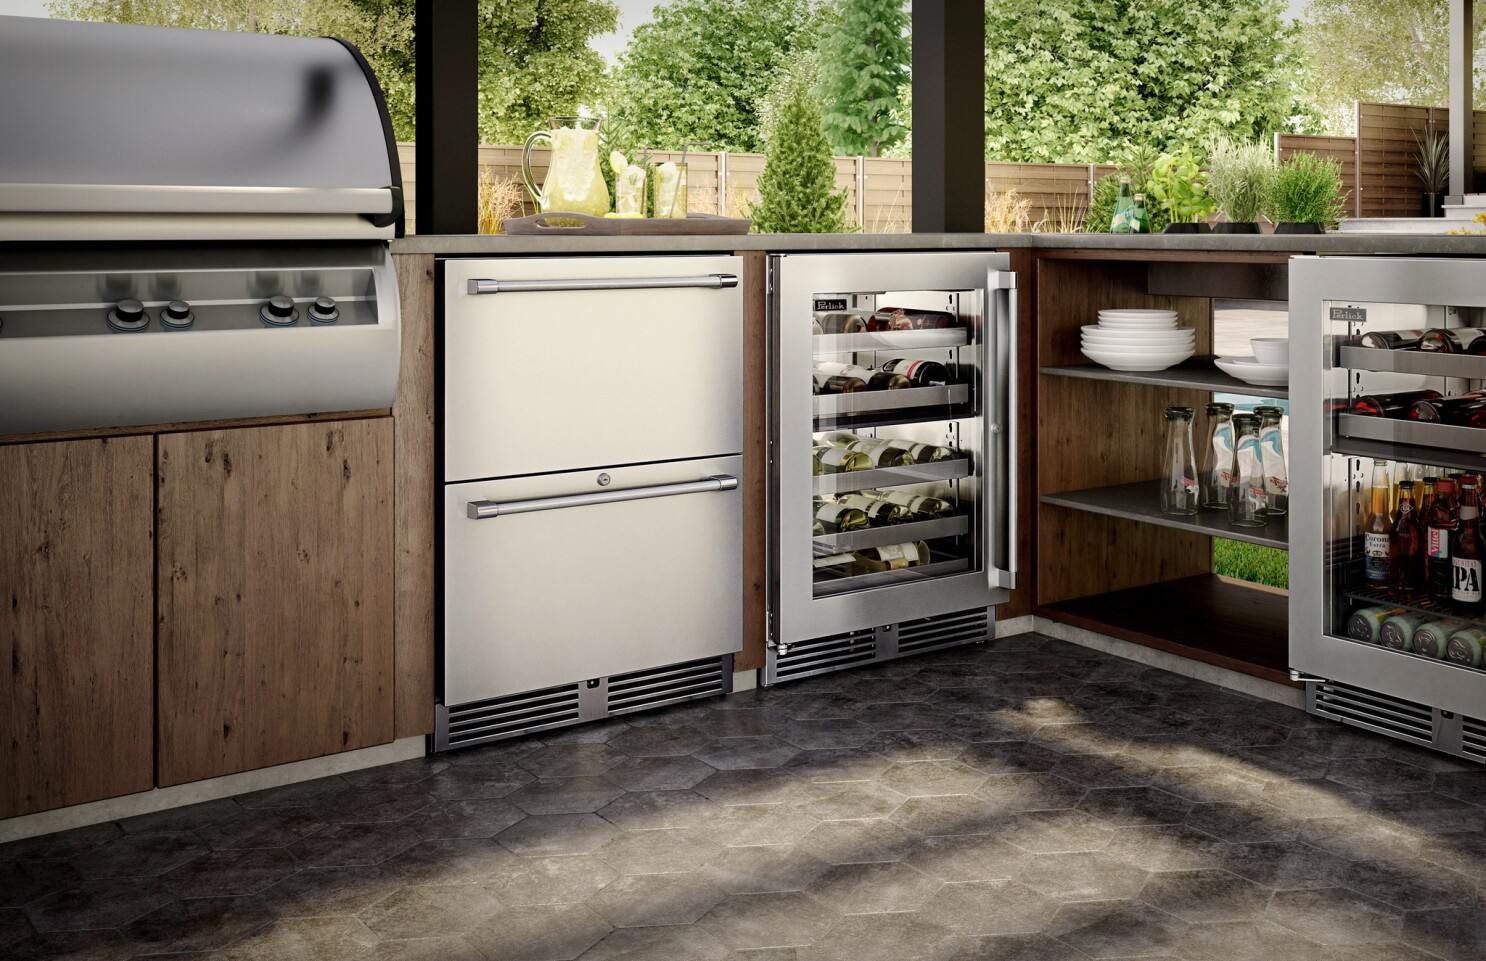 Glamped-up grilling in luxury outdoor kitchens - Los Angeles ...